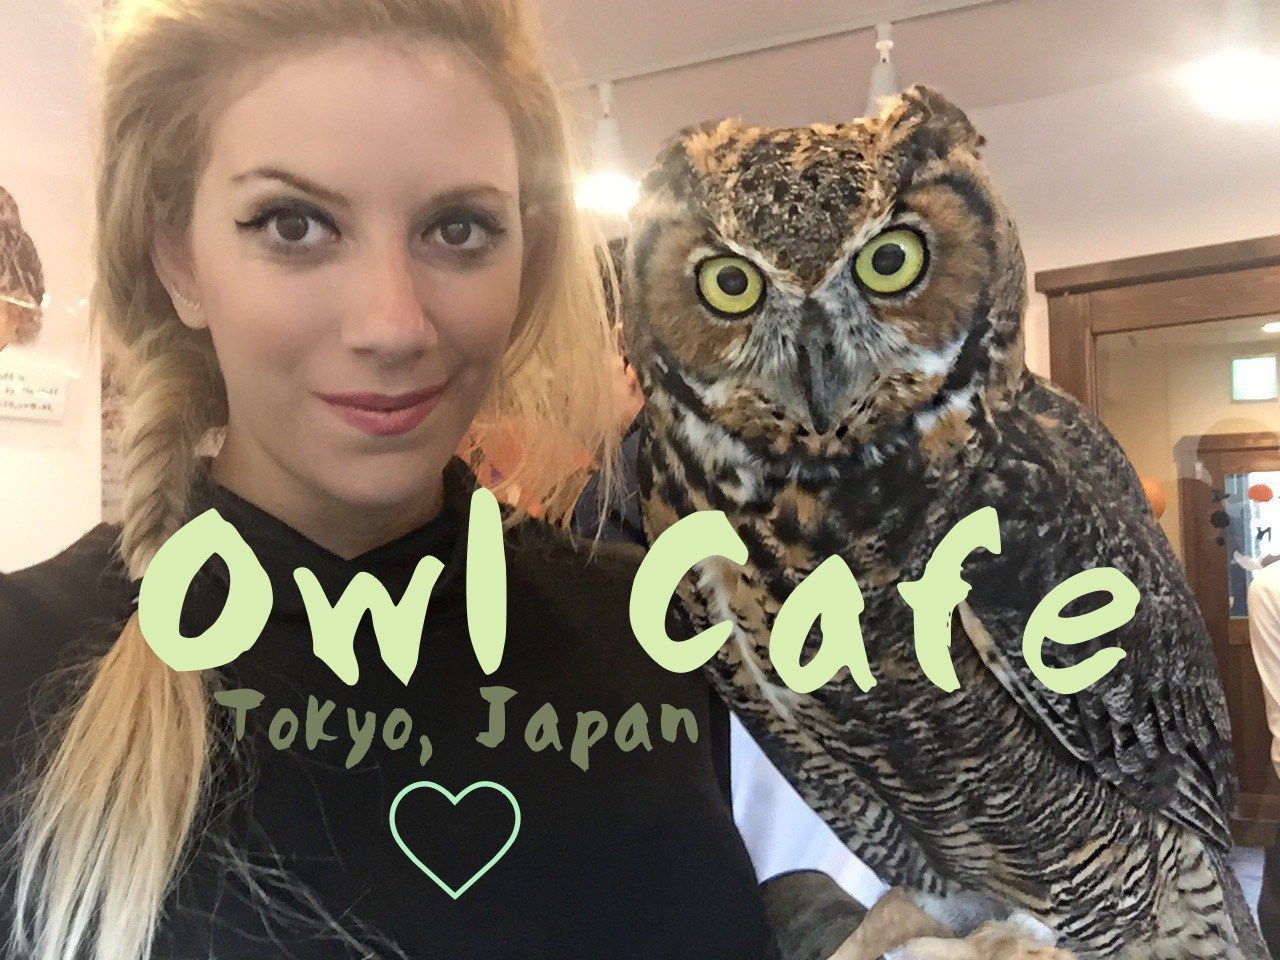 Everything You Need To Know About The Owl Cafe In Tokyo, Japan -